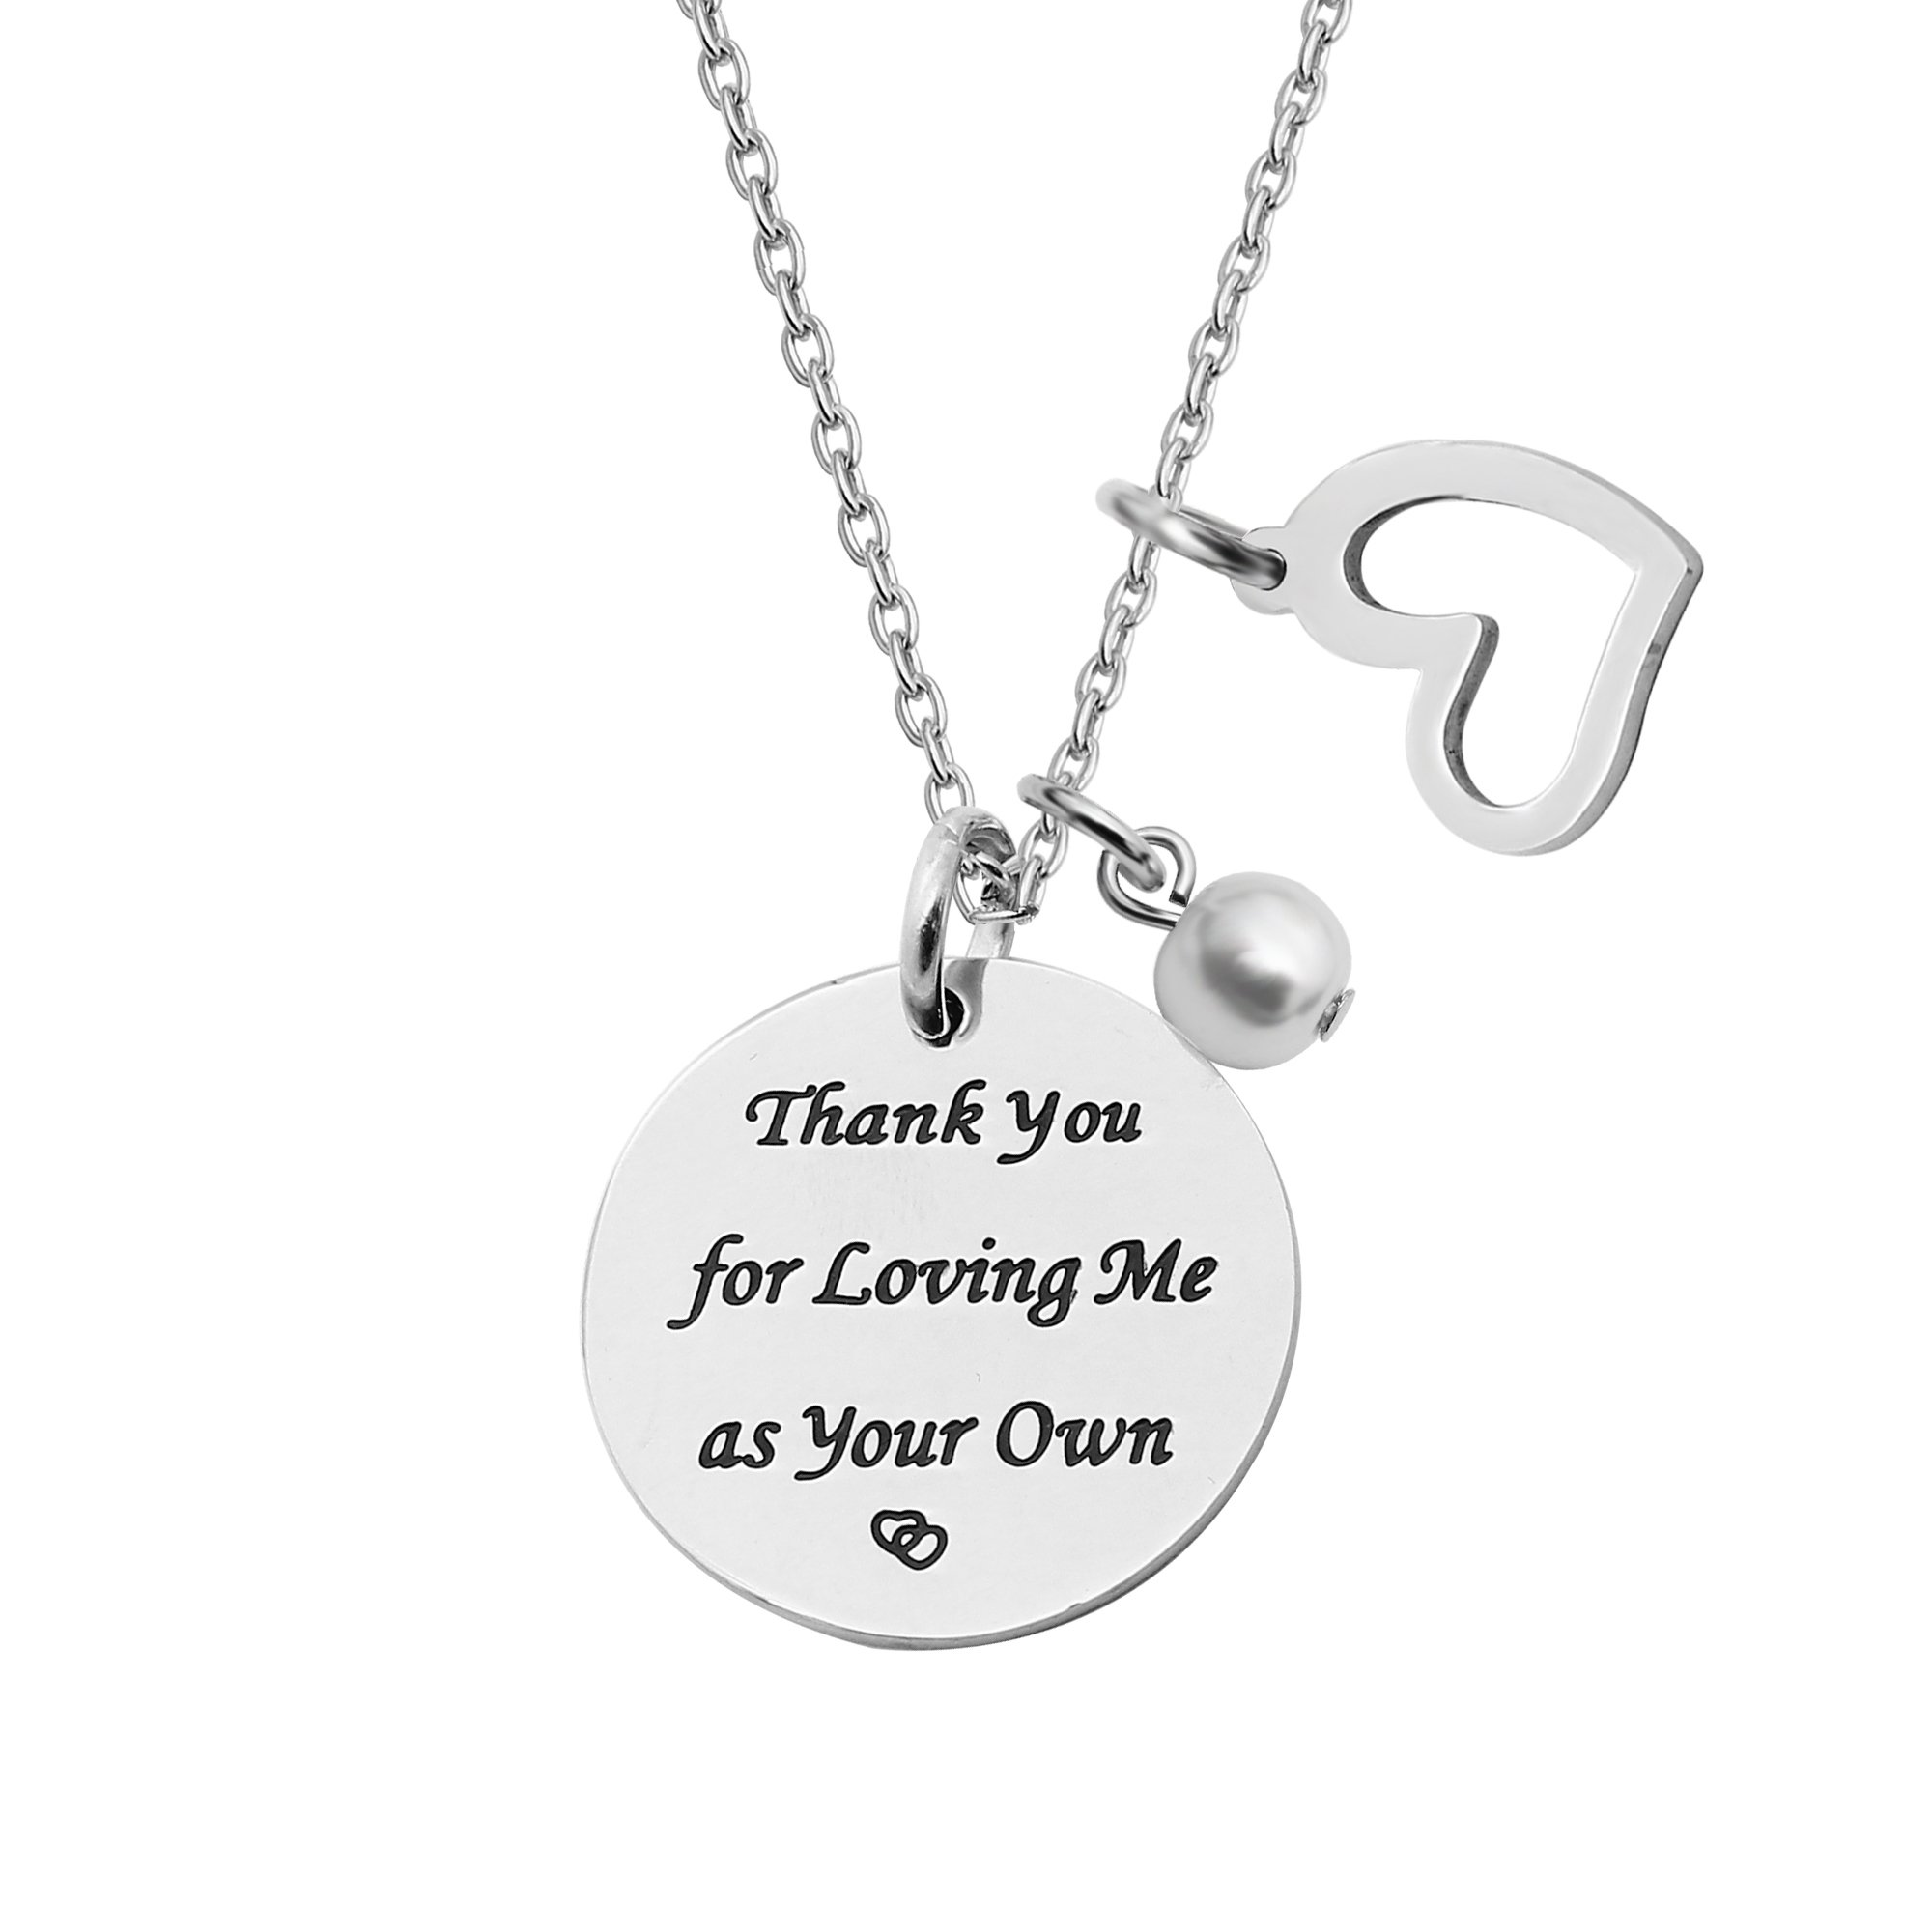 Pendant Necklace Mother Step Mom Gift Wedding Anniversary Thank You For Loving Me As Your Own